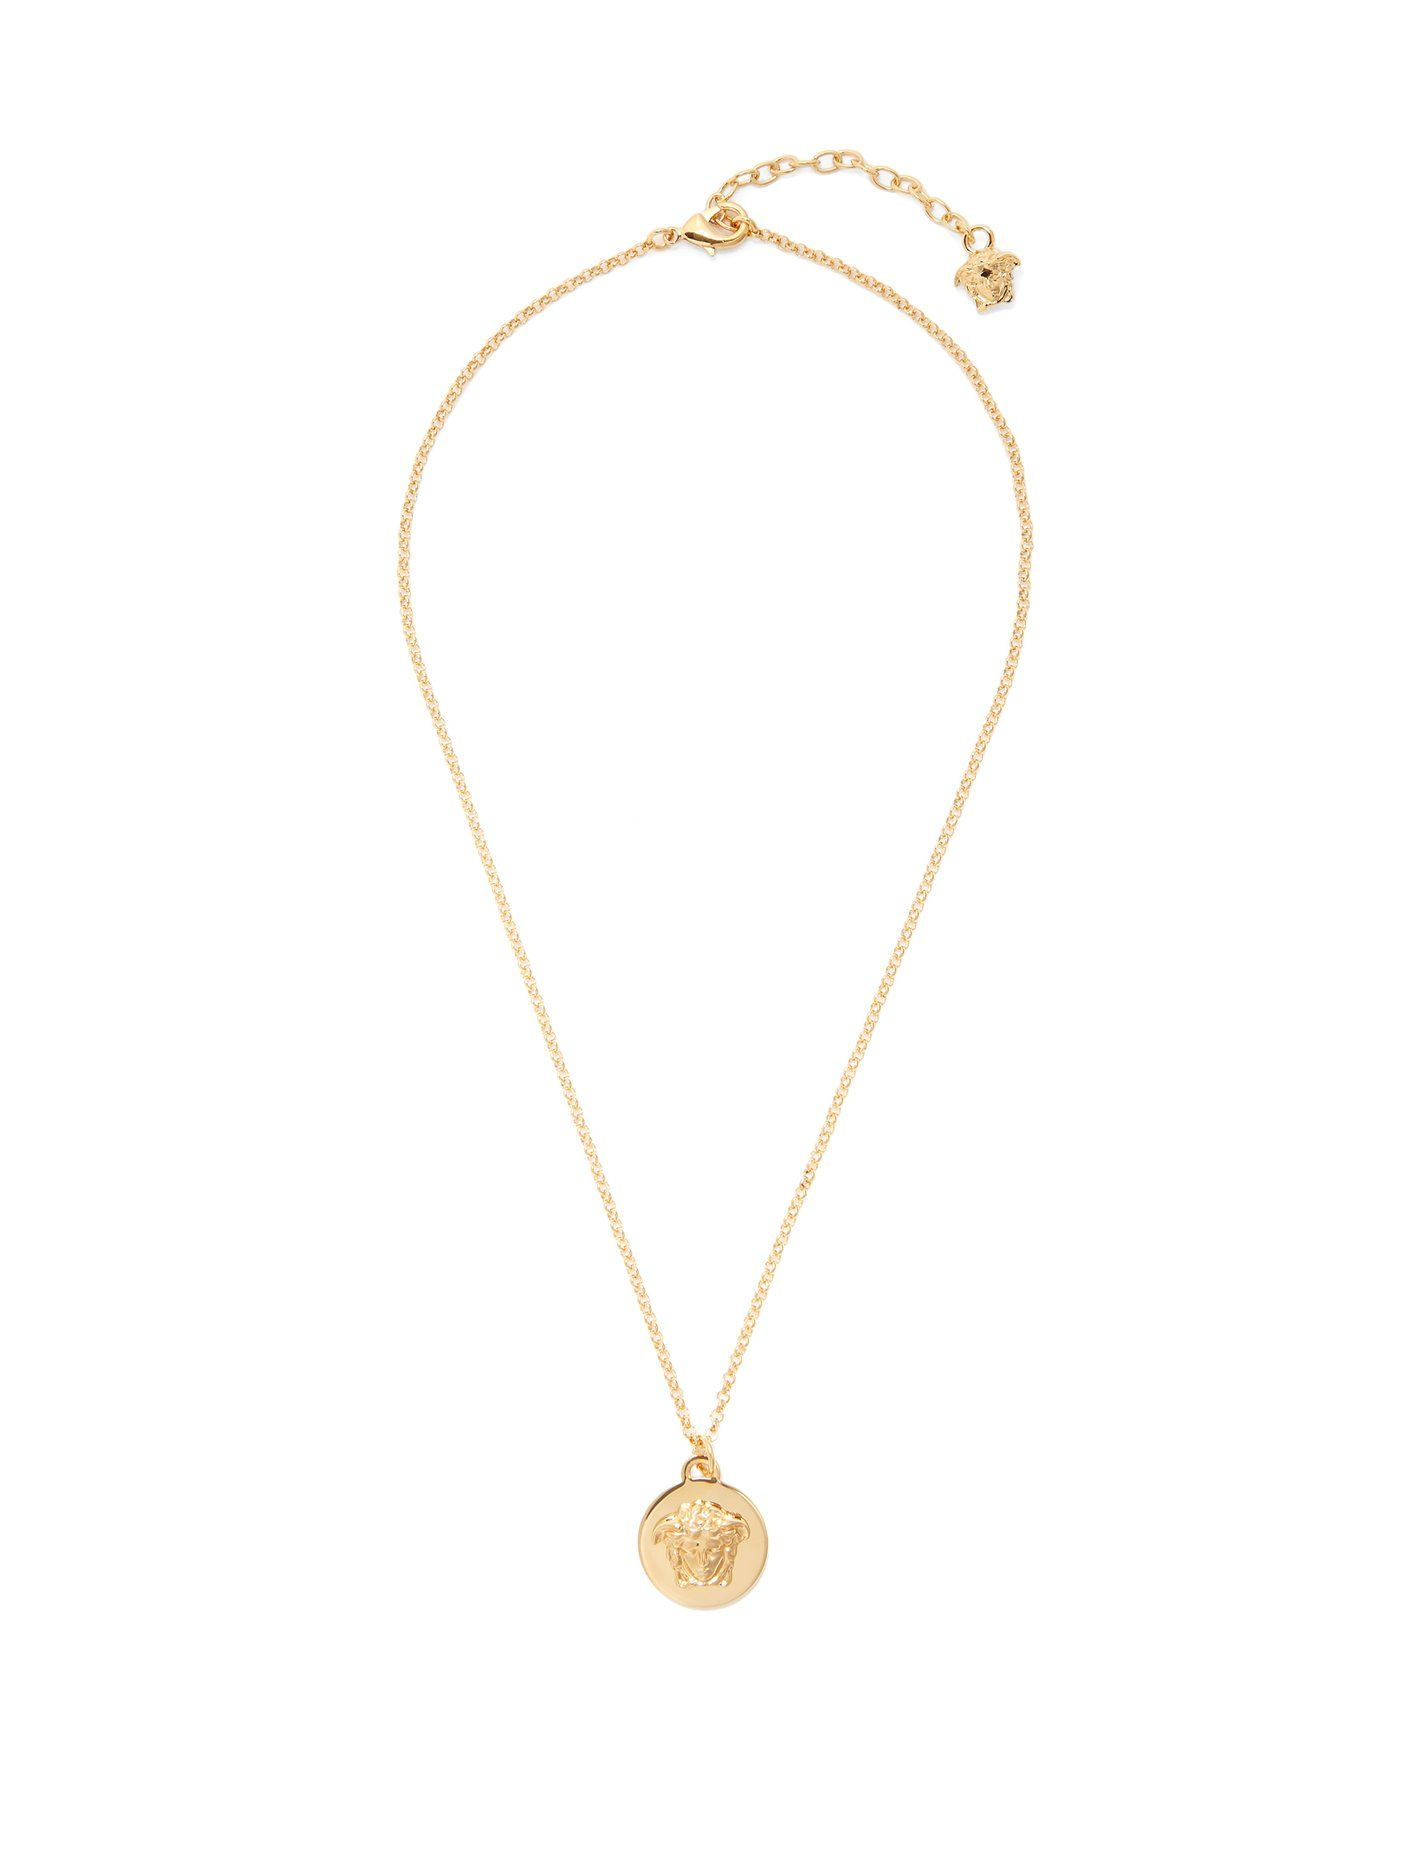 gold necklace shop jewellery medusa serge pendant denimes